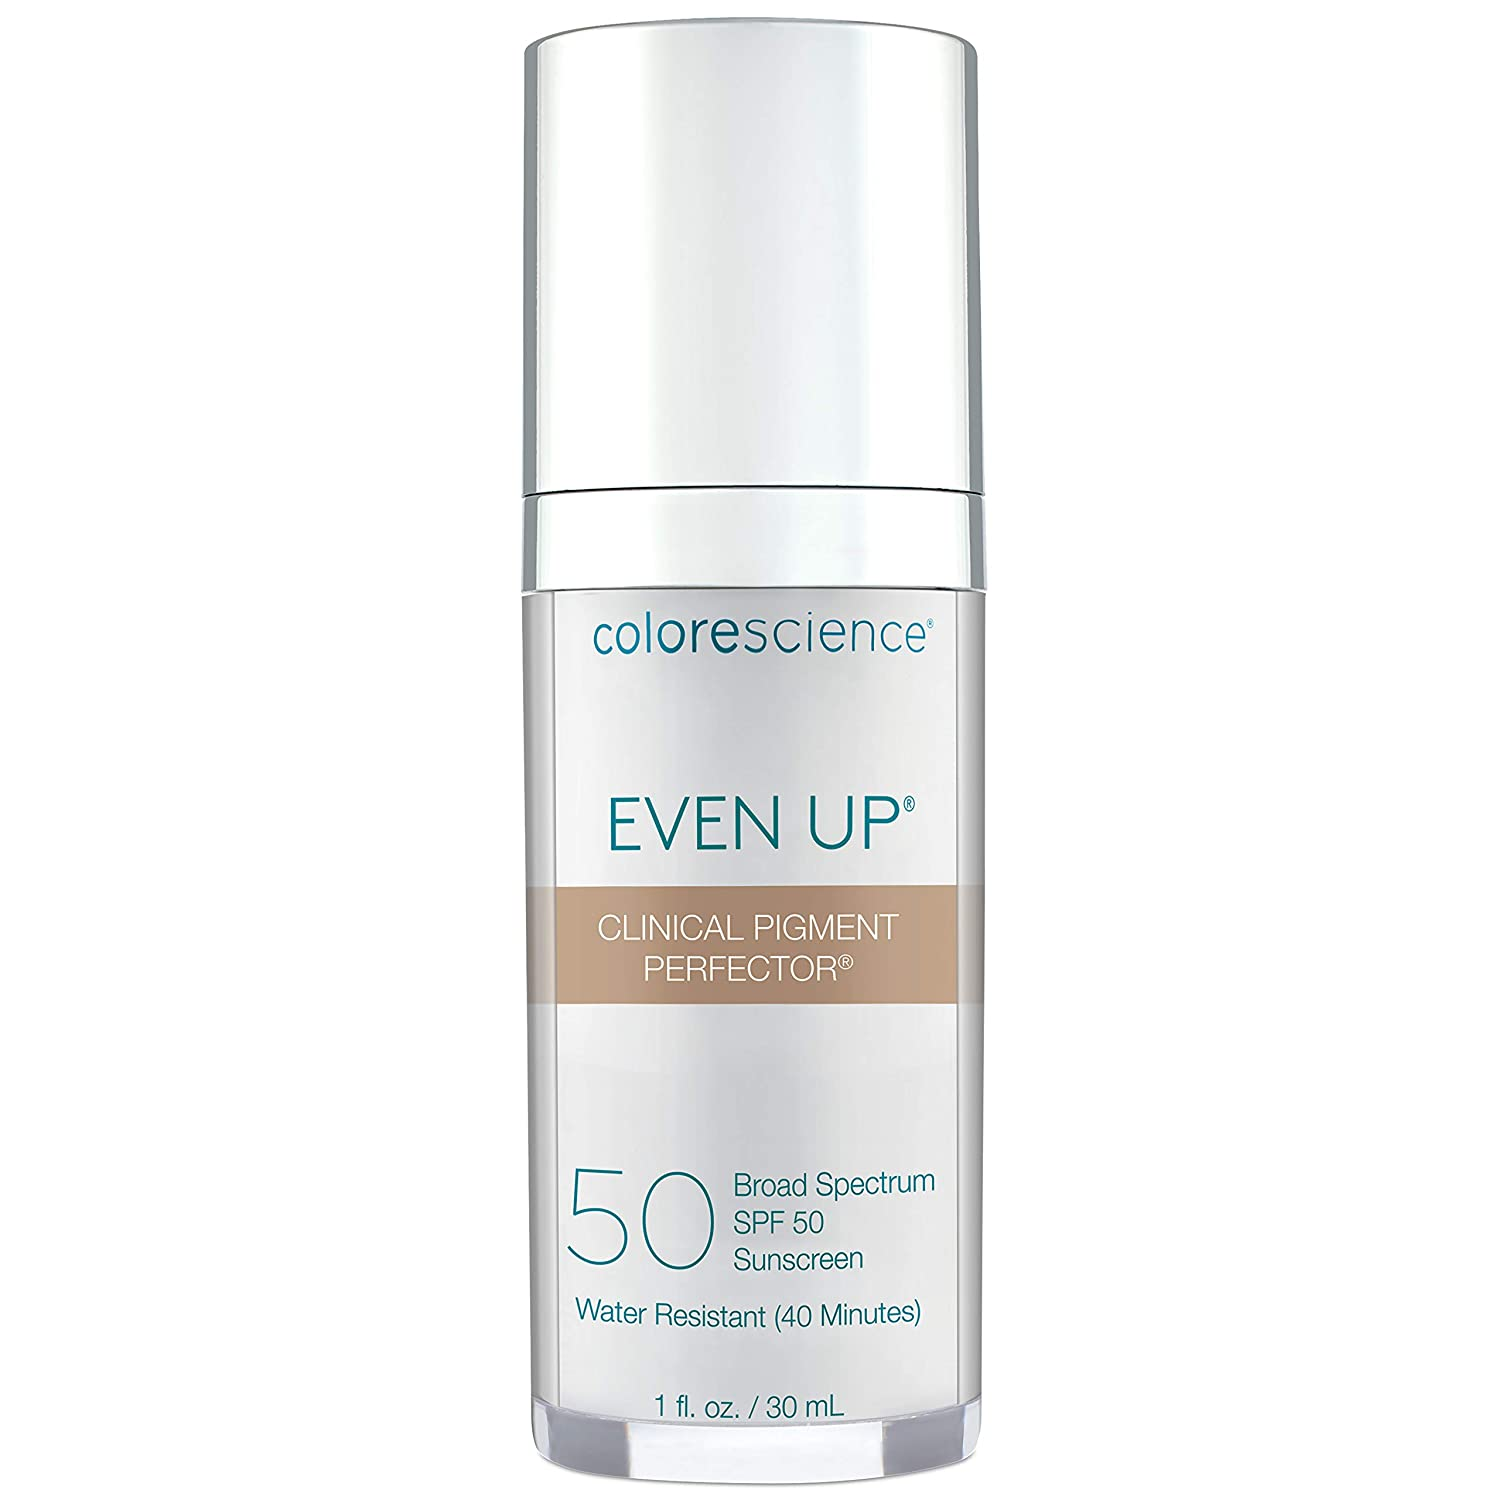 Colorescience Even Up Clinical Pigment Perfector-Broad Spectrum SPF 50